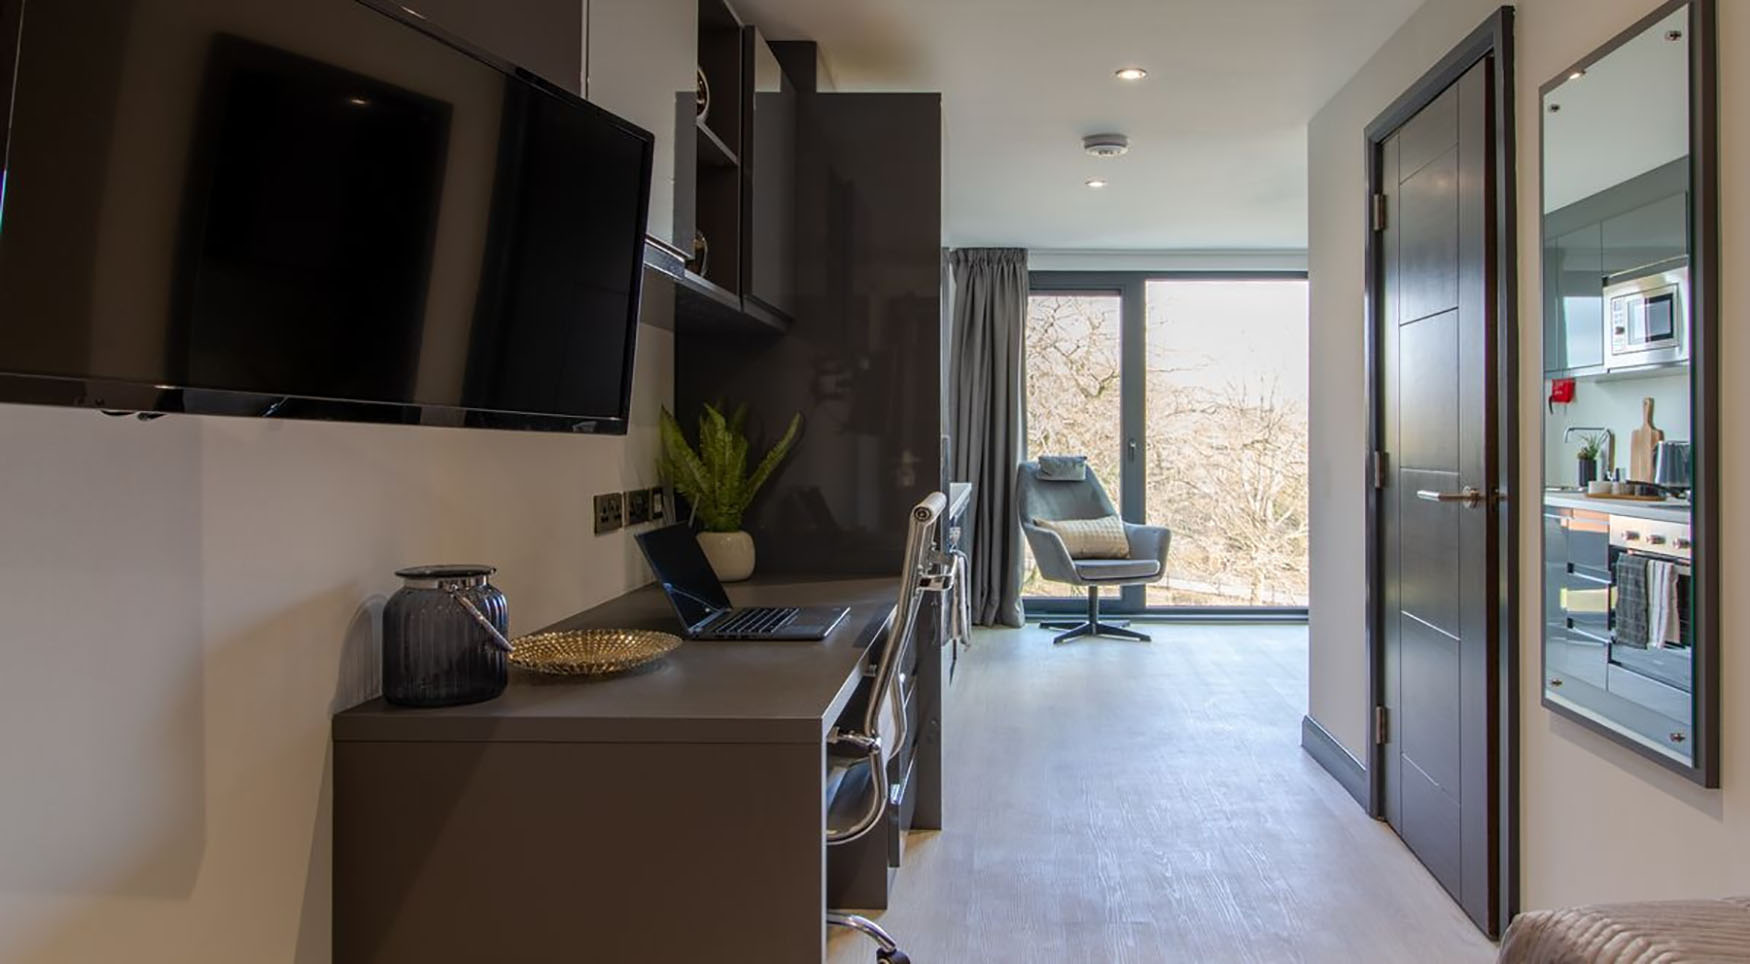 Bright space atThe Residence Coventry, Centre, Newmarket - Citybase Apartments